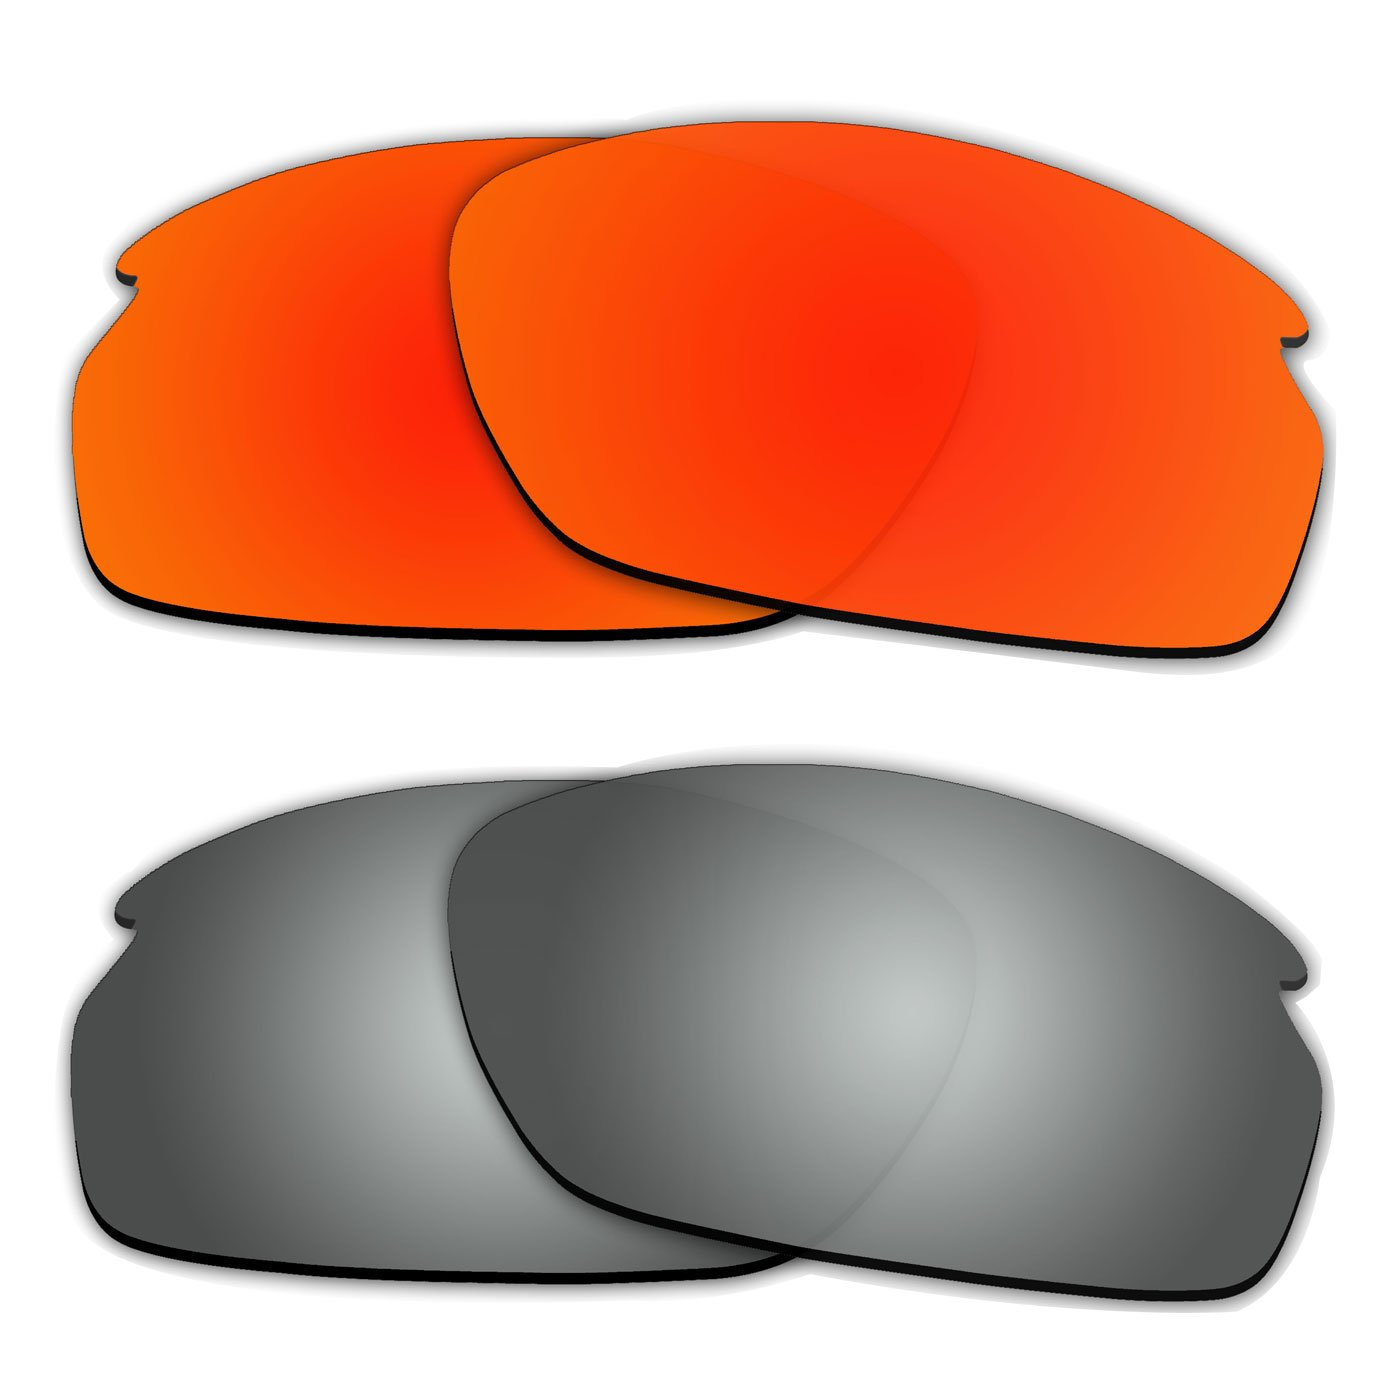 5ccfb04851 Amazon.com   ACOMPATIBLE 2 Pair Replacement Polarized Lenses for Oakley  Carbon Shift Sunglasses OO9302 Pack P2   Sports   Outdoors